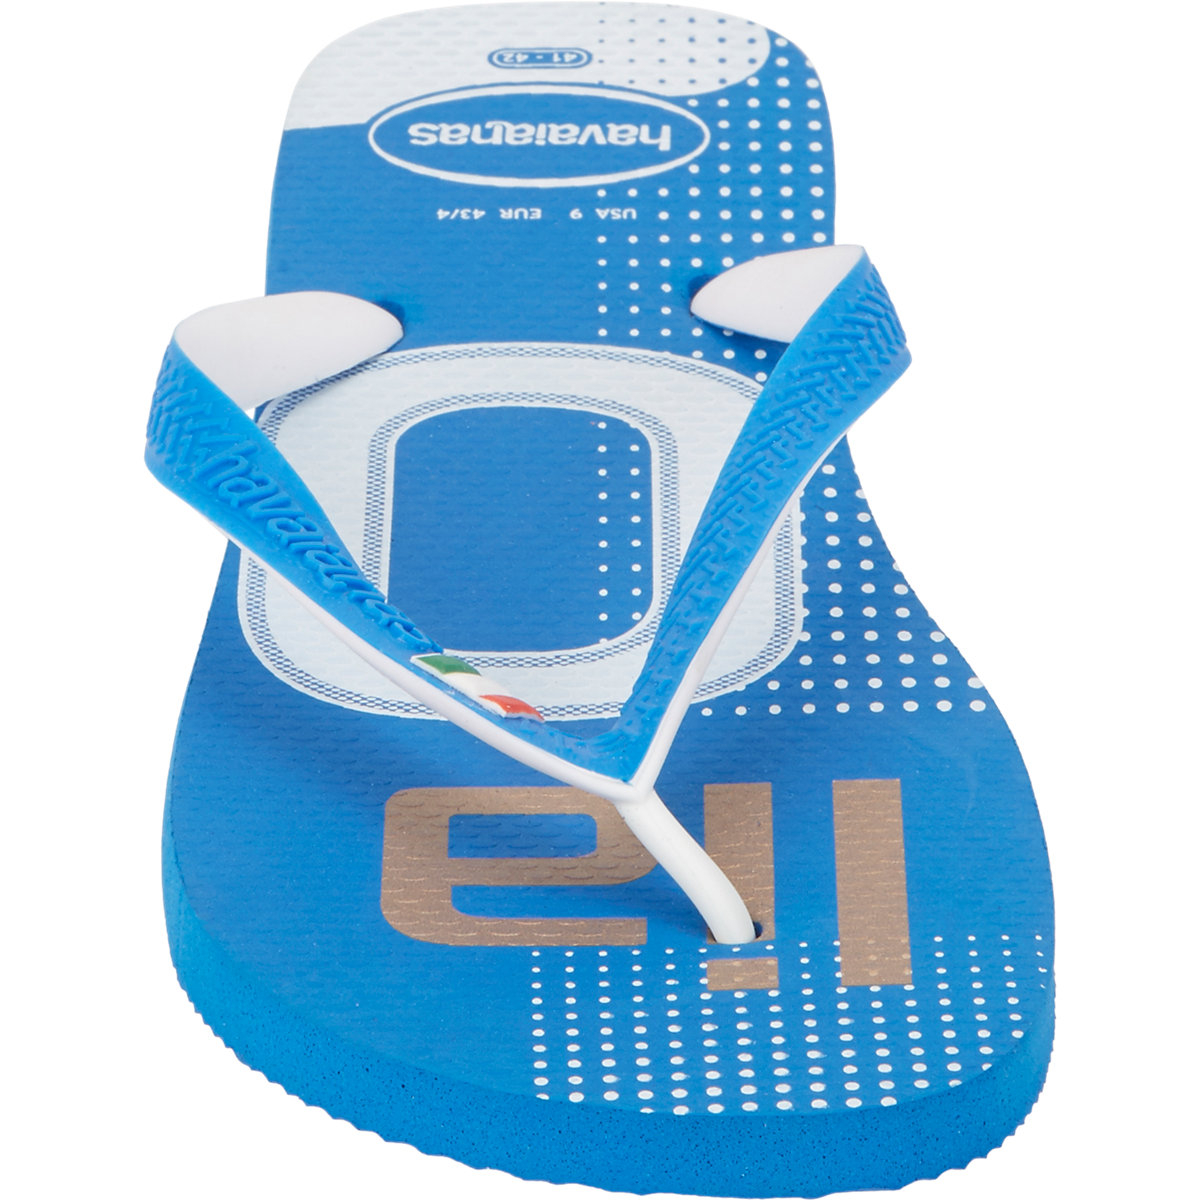 3df5ef49e6bf45 Lyst - Havaianas Italy Flip Flops in Blue for Men